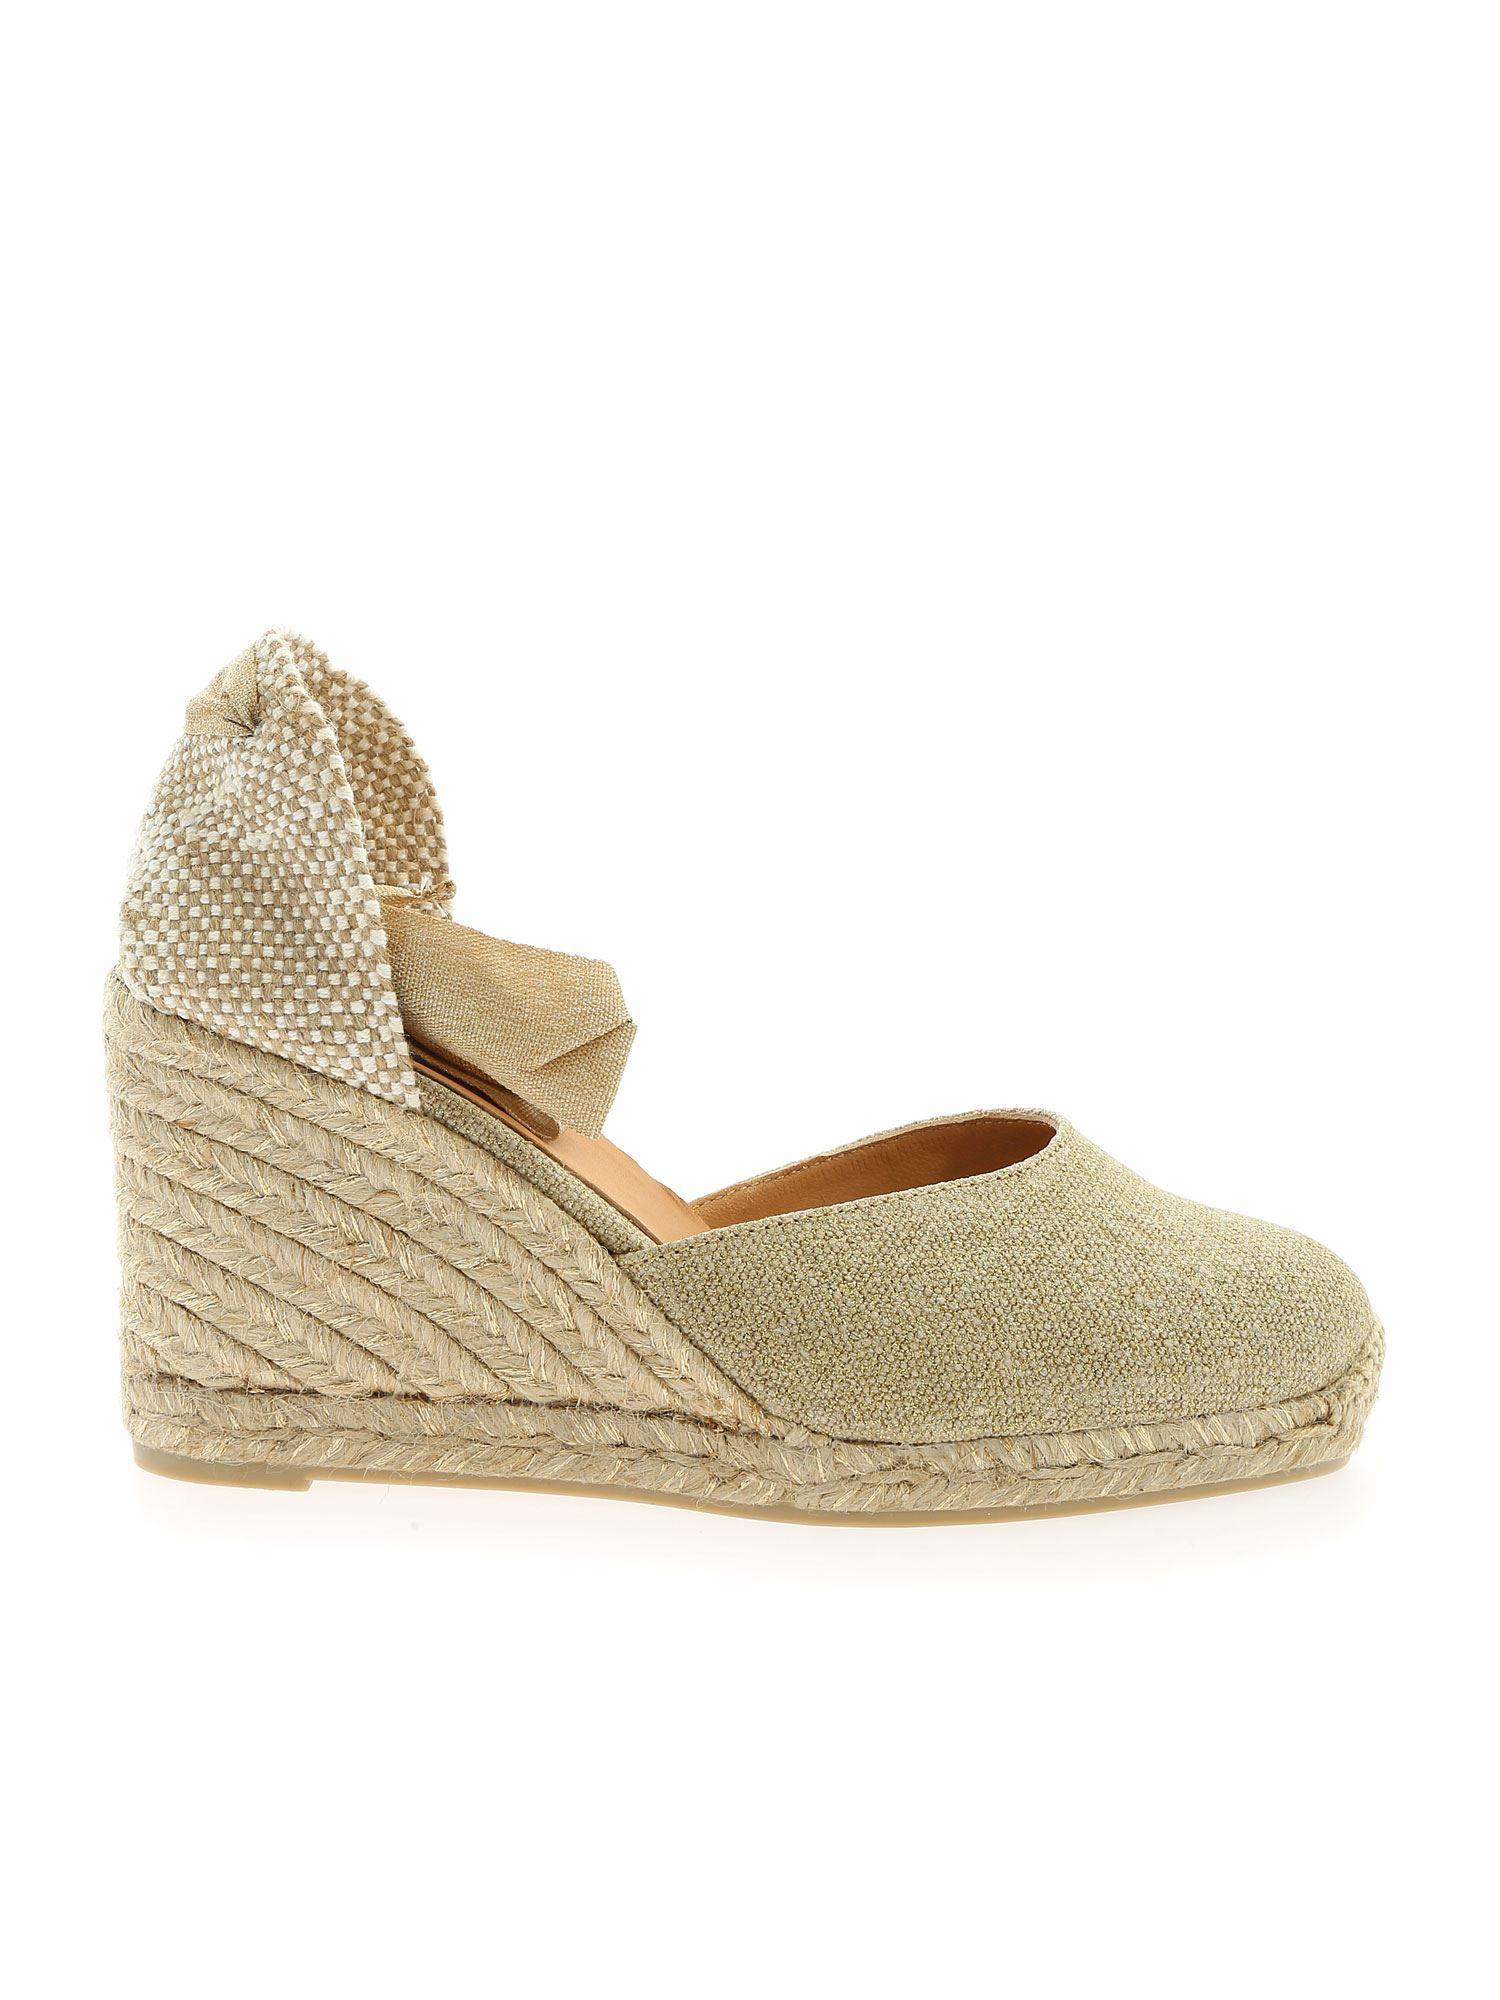 Castaã±er CARINA ESPADRILLES IN GOLD COLOR